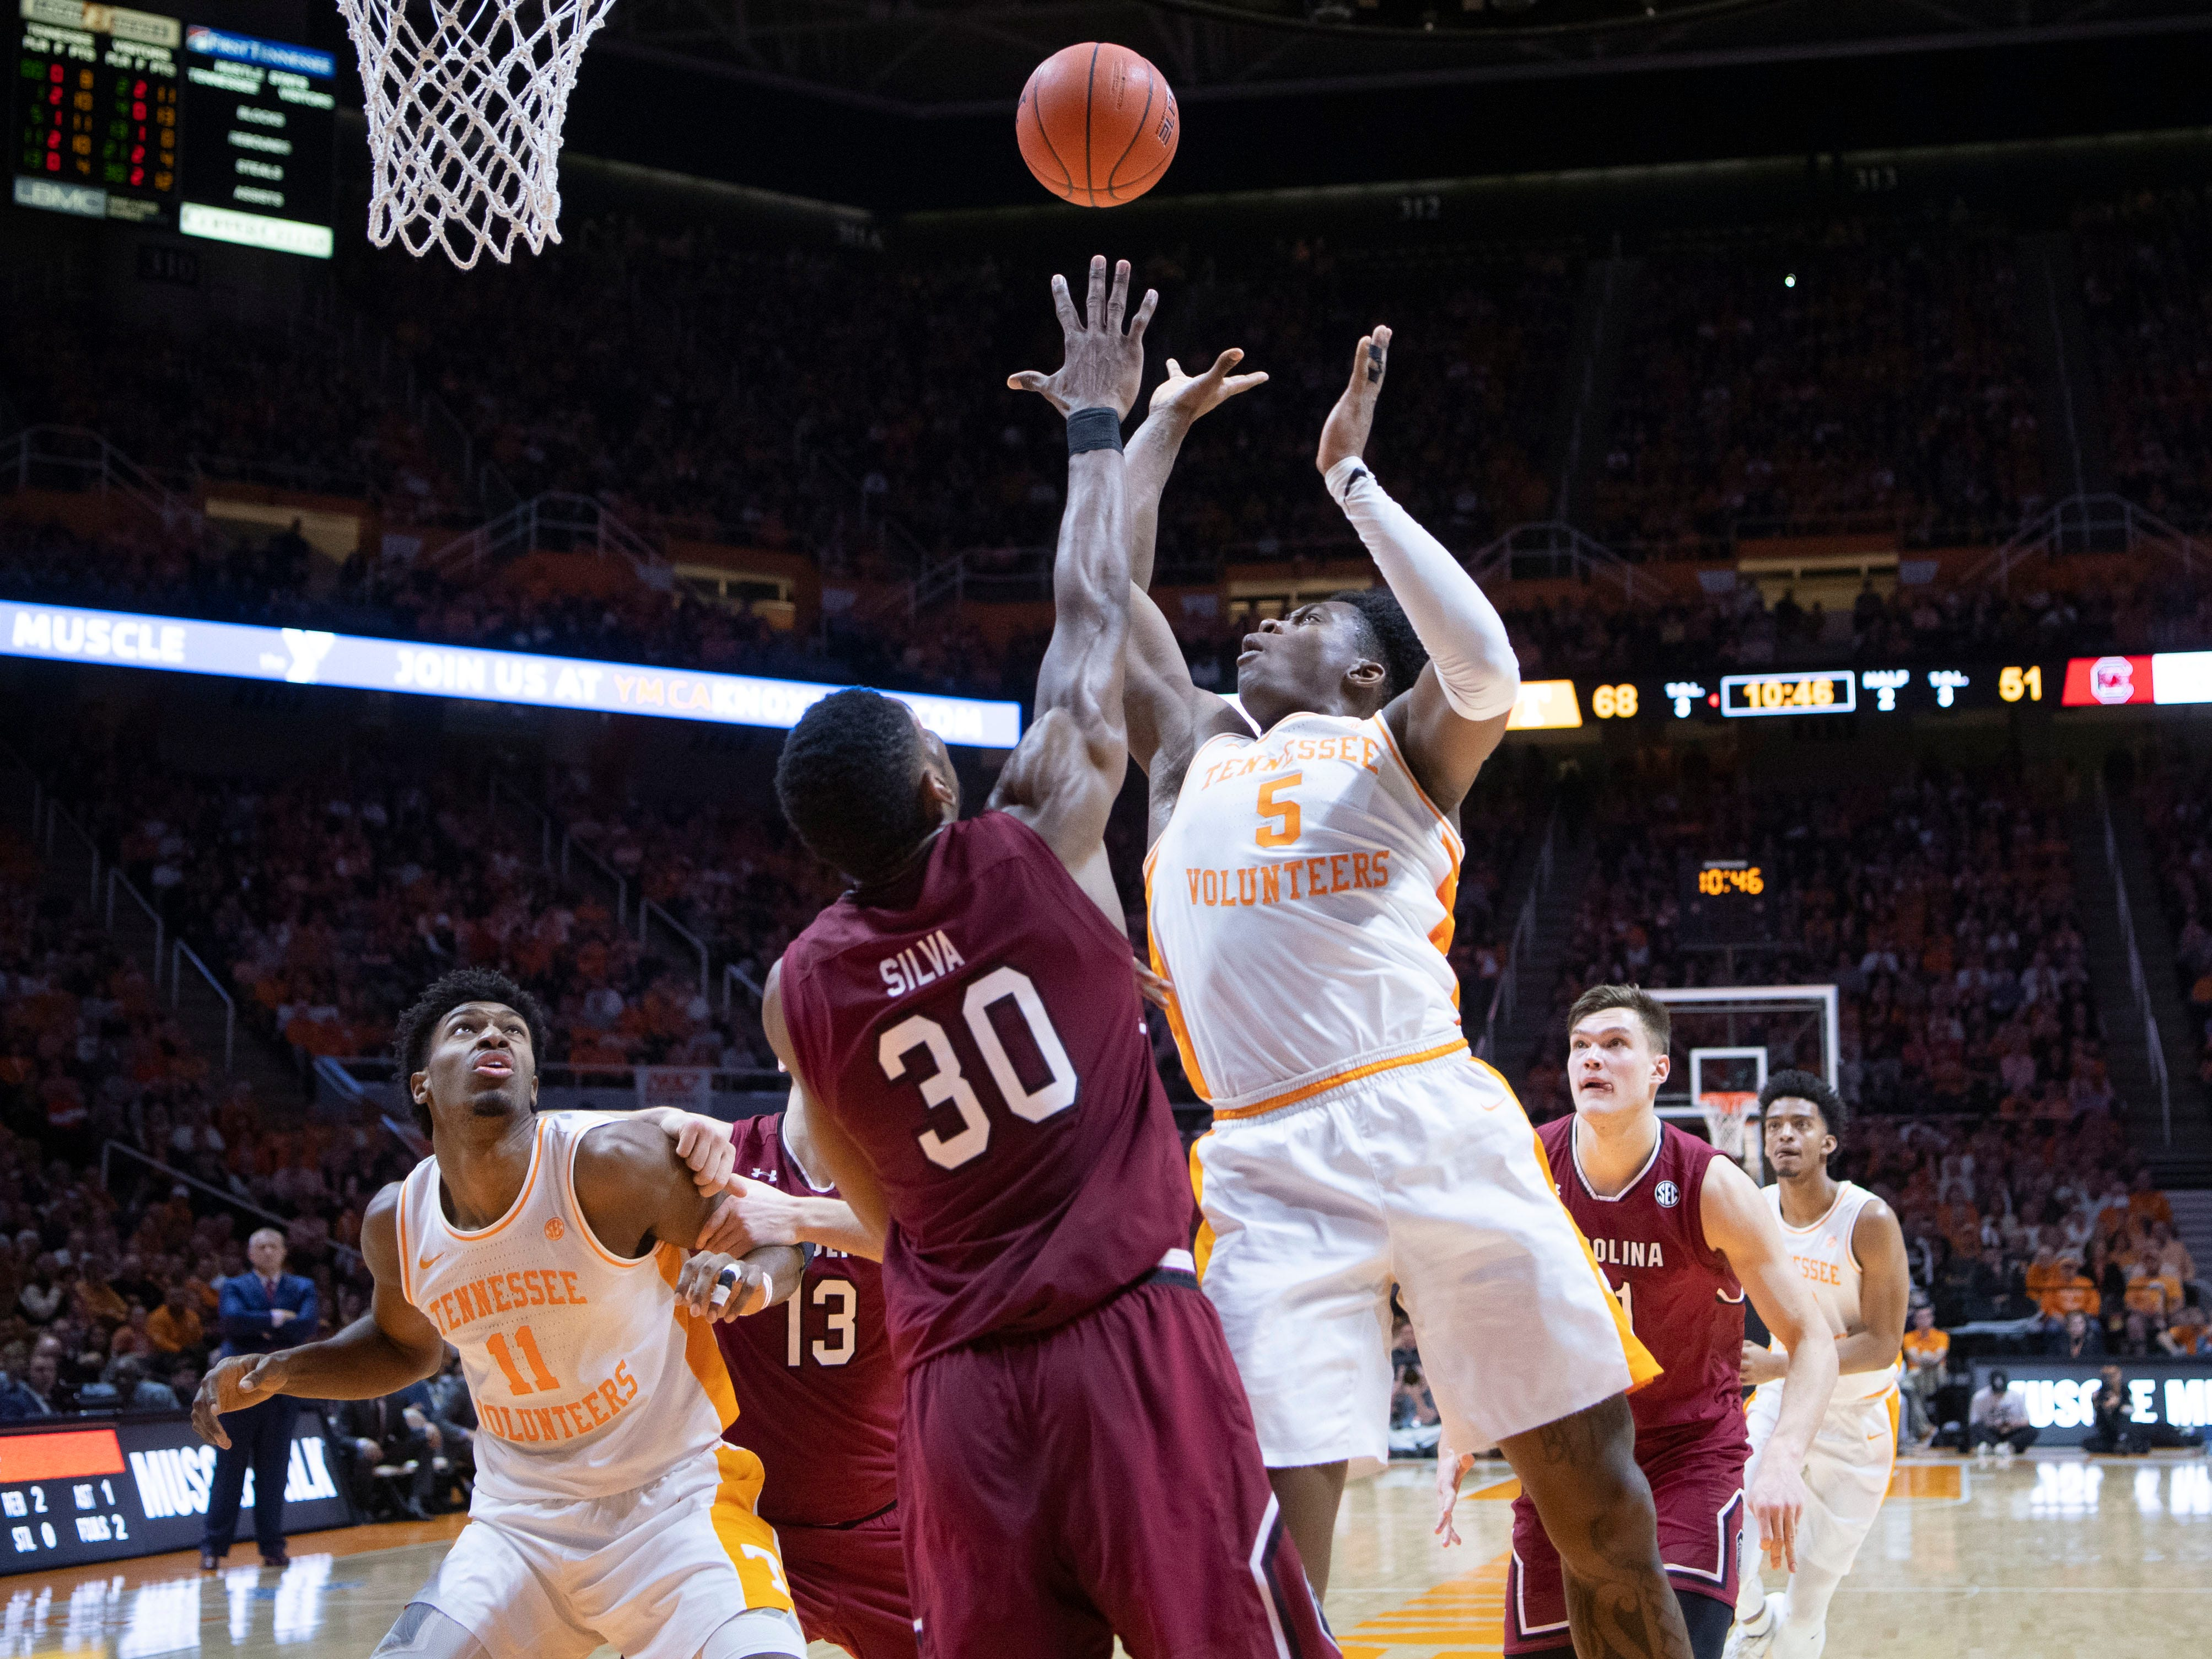 Tennessee's Admiral Schofield (5) takes a shot while guarded by South Carolina's Chris Silva (30) on Wednesday, February 13, 2019.